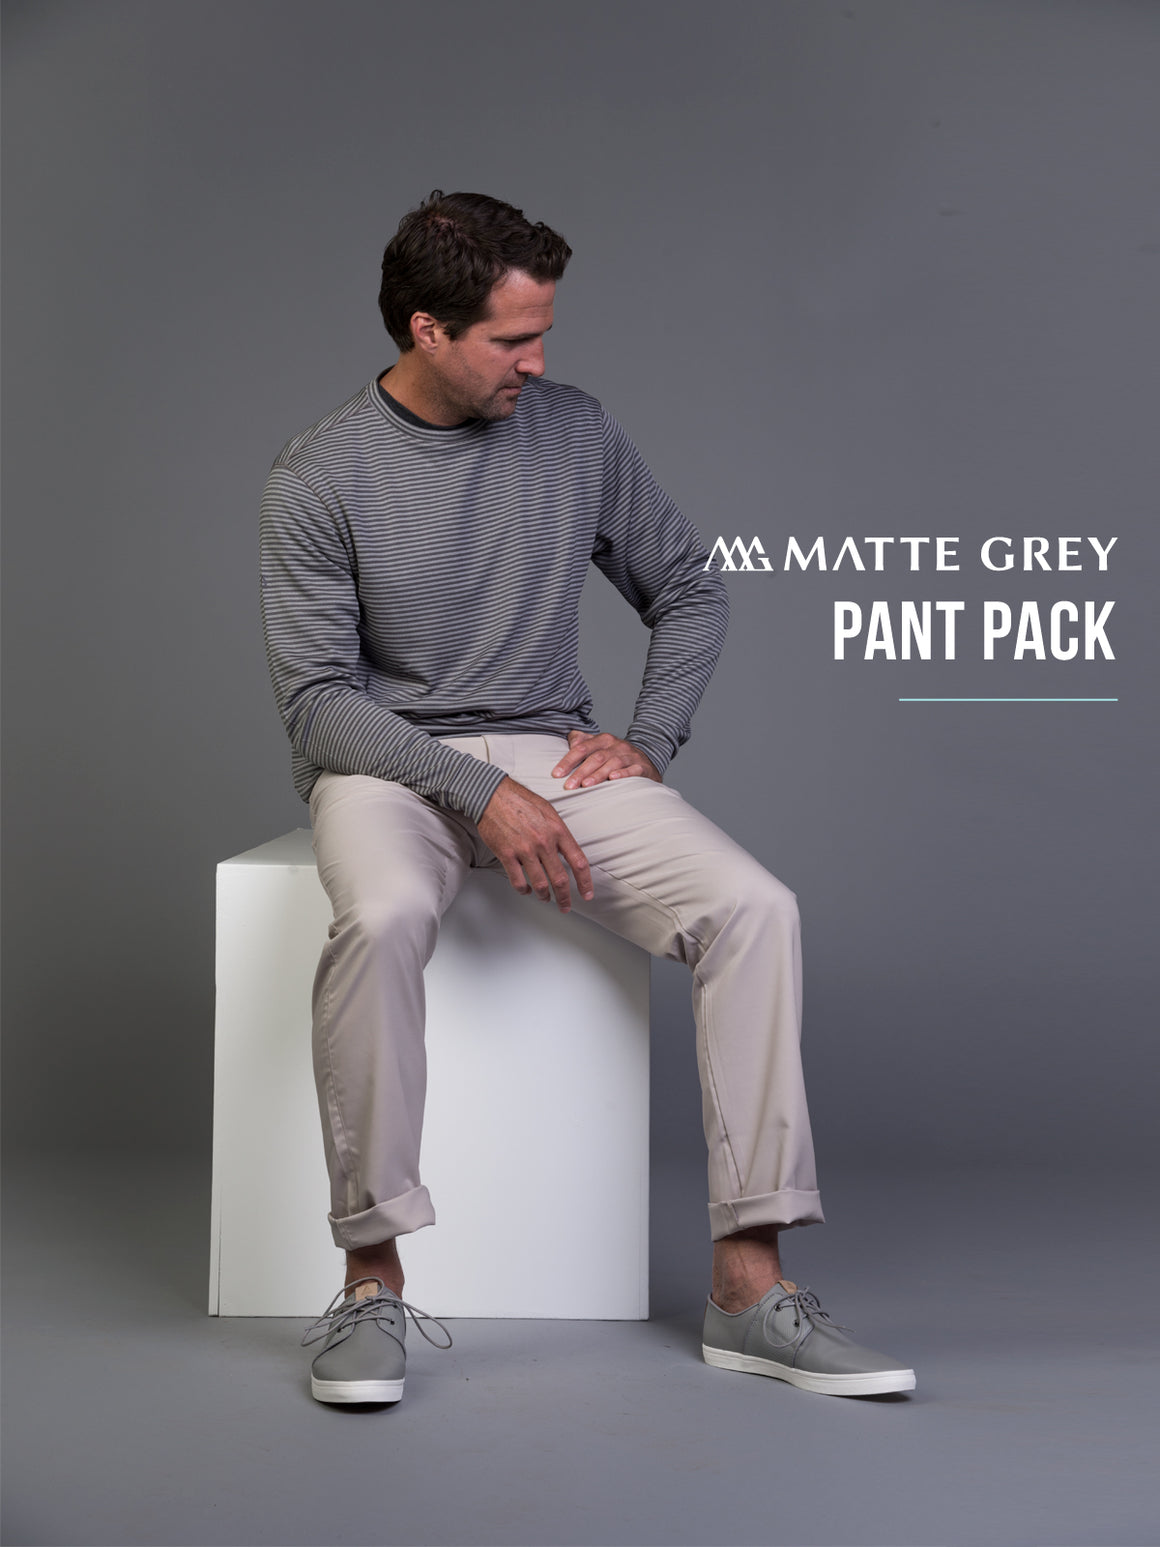 Matte Grey Pant Sample Pack Flash Sale